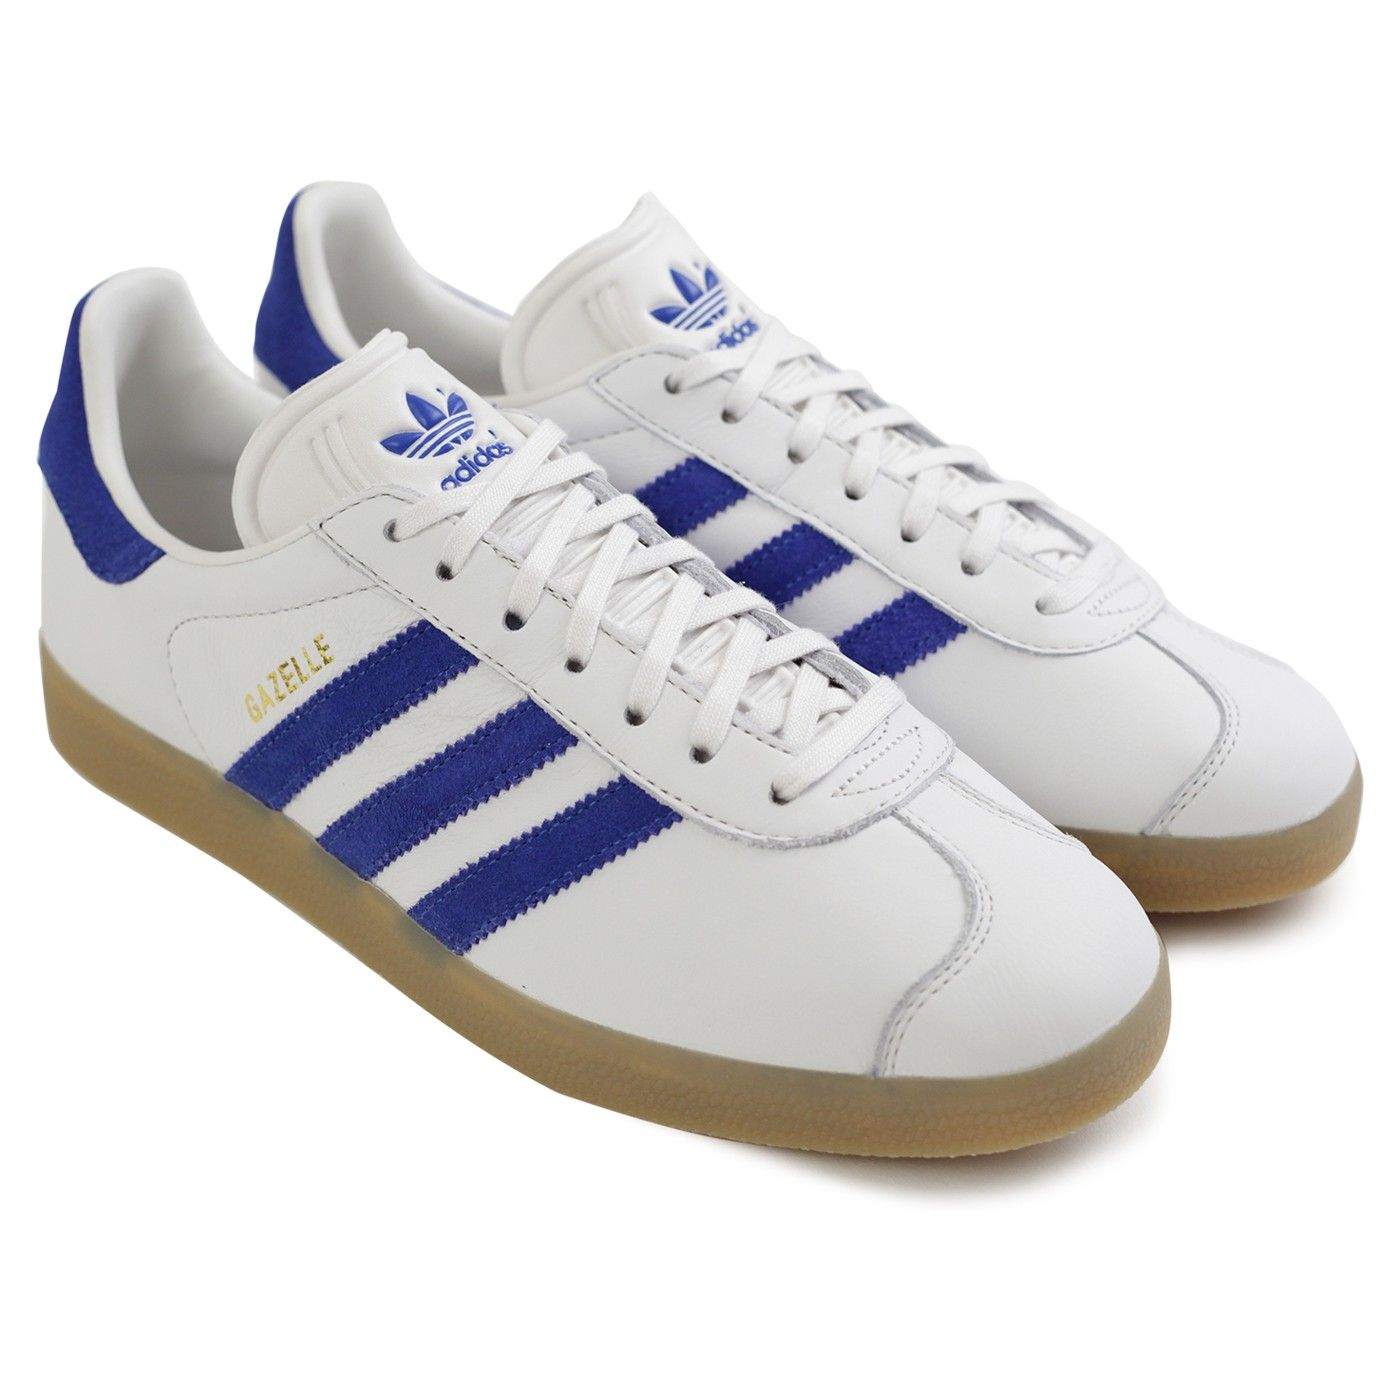 35fb4cfb4d7e Gazelle Shoes in Vintage White   Bold Blue   Gum by Adidas Originals ...